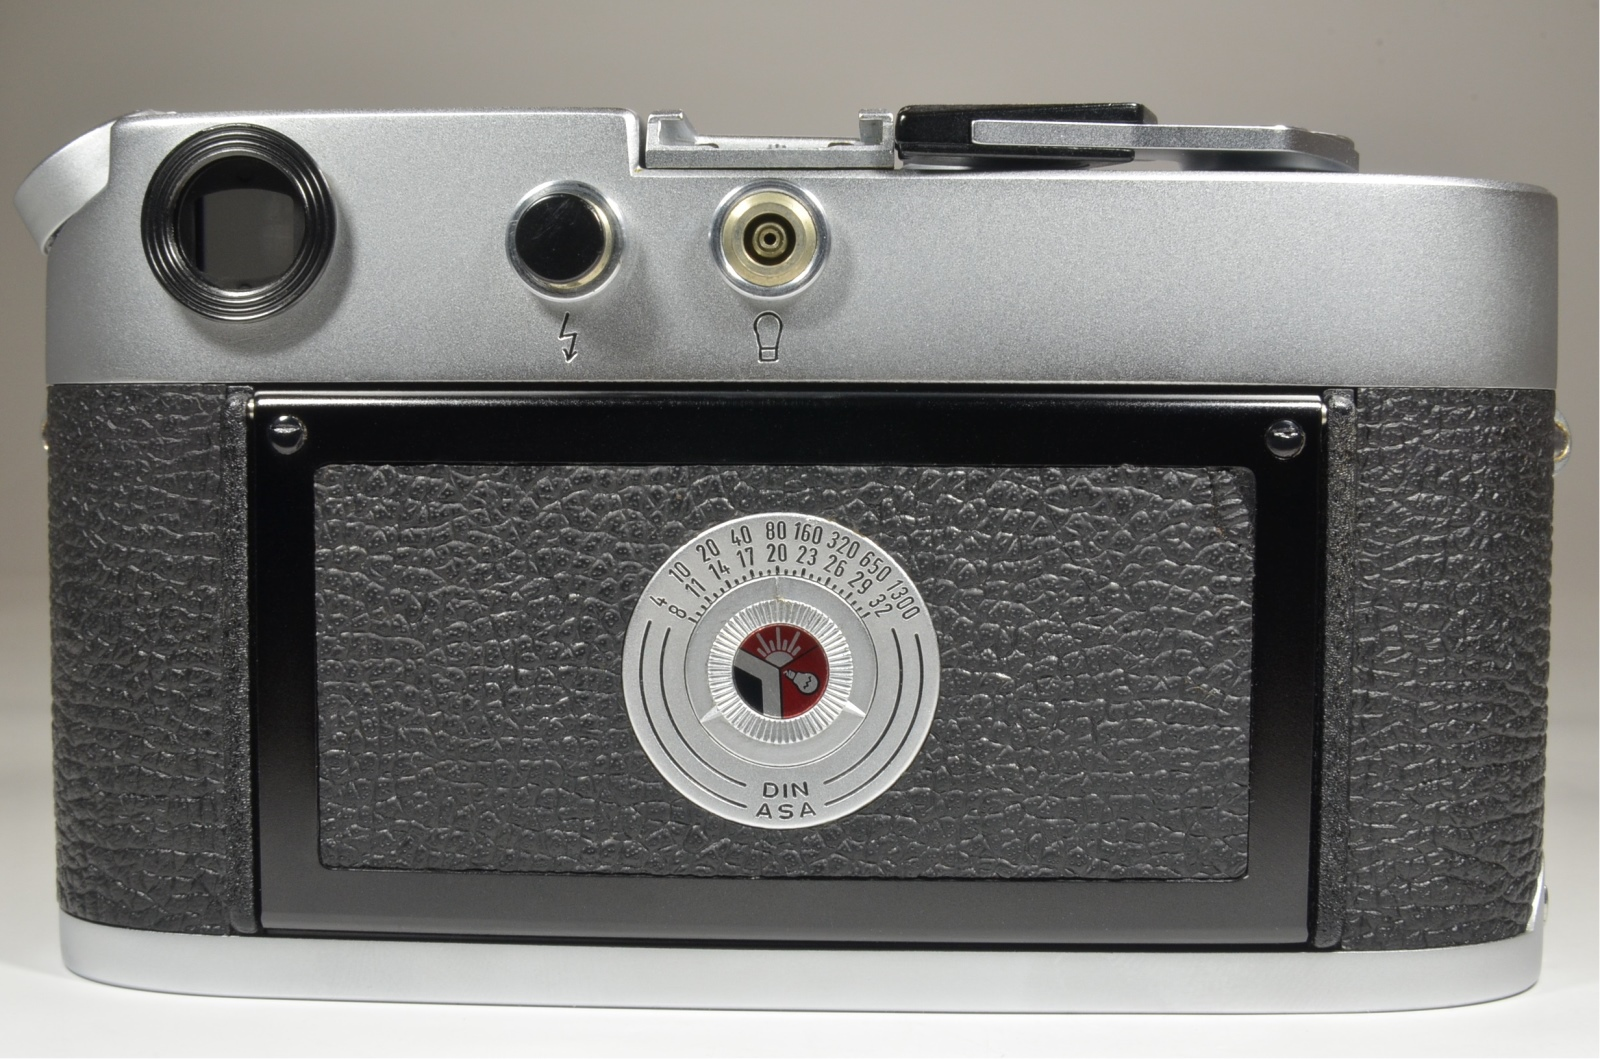 leica m4 35mm rangefinder film camera s/n 1230551 year 1969 with strap